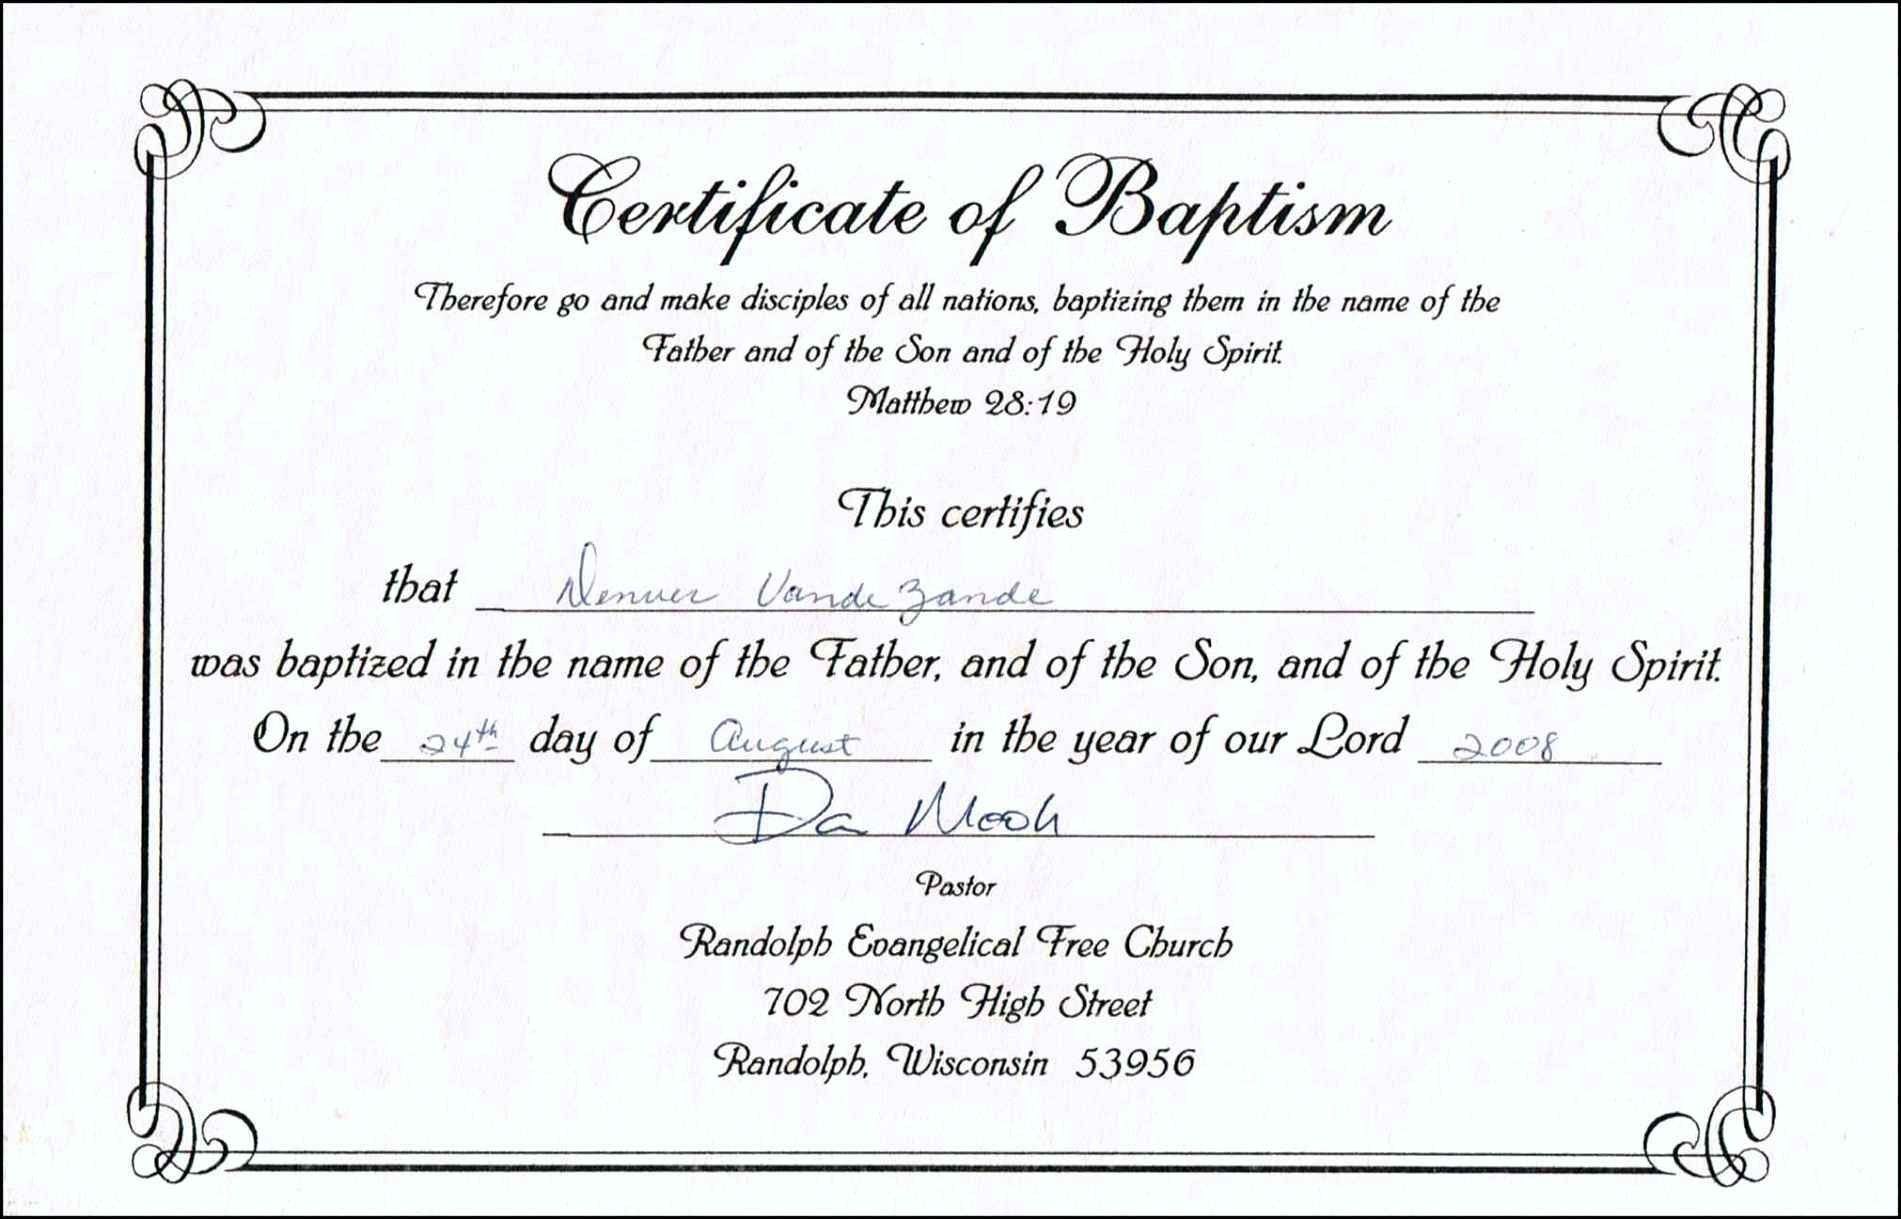 Baptism Certificate Template Professional Free Download Catholic - Free Online Printable Baptism Certificates